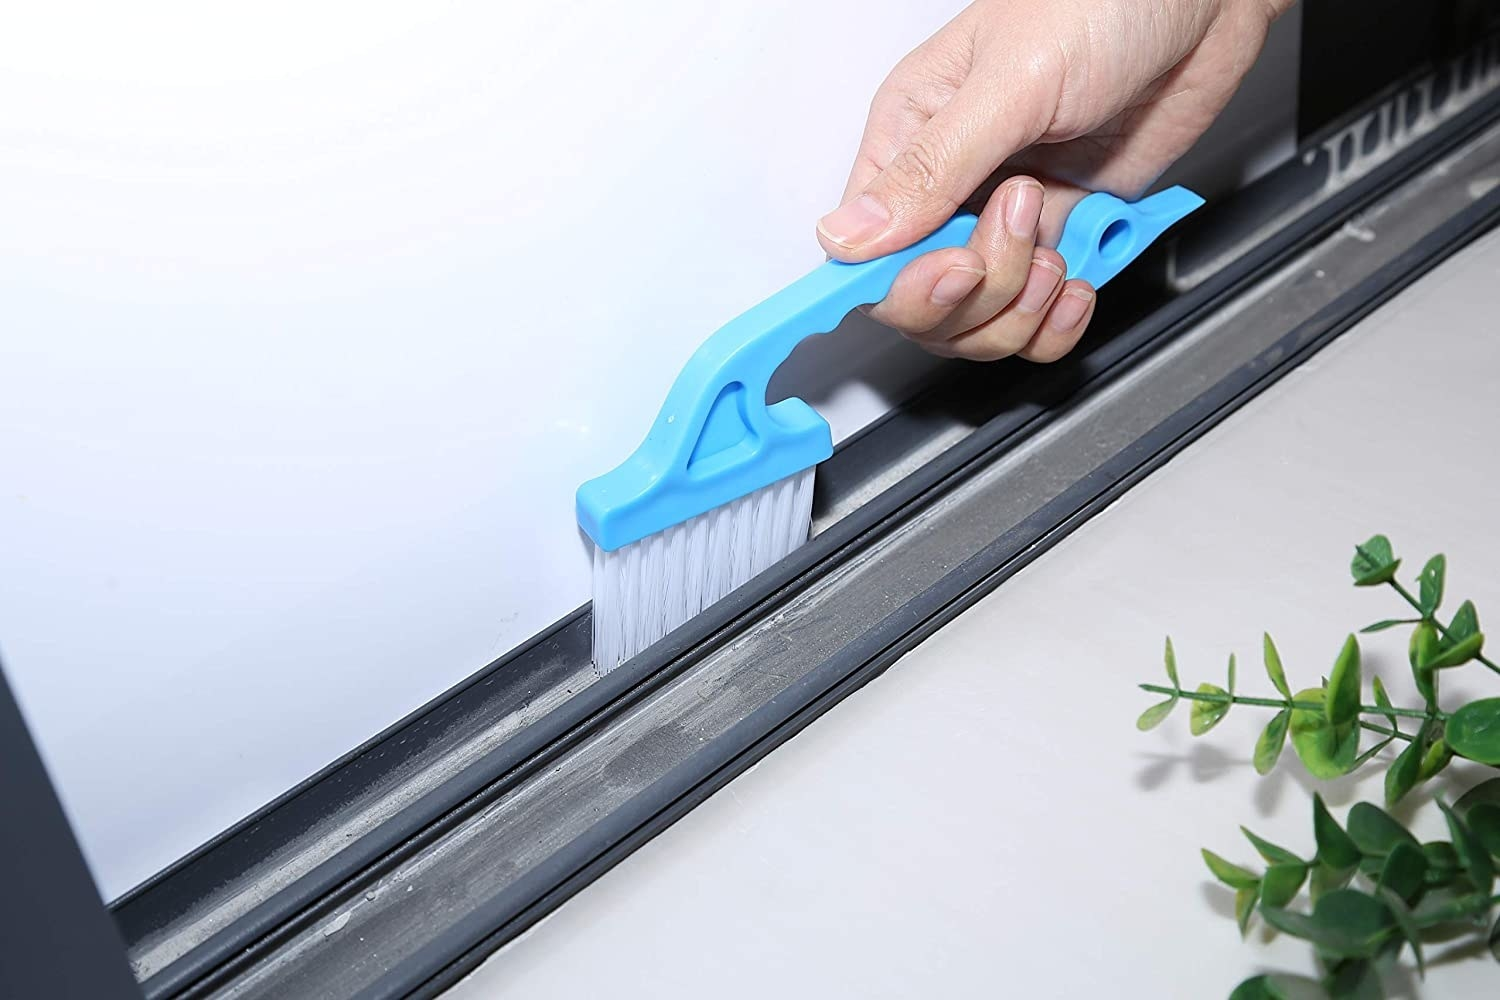 Model cleaning window with brush